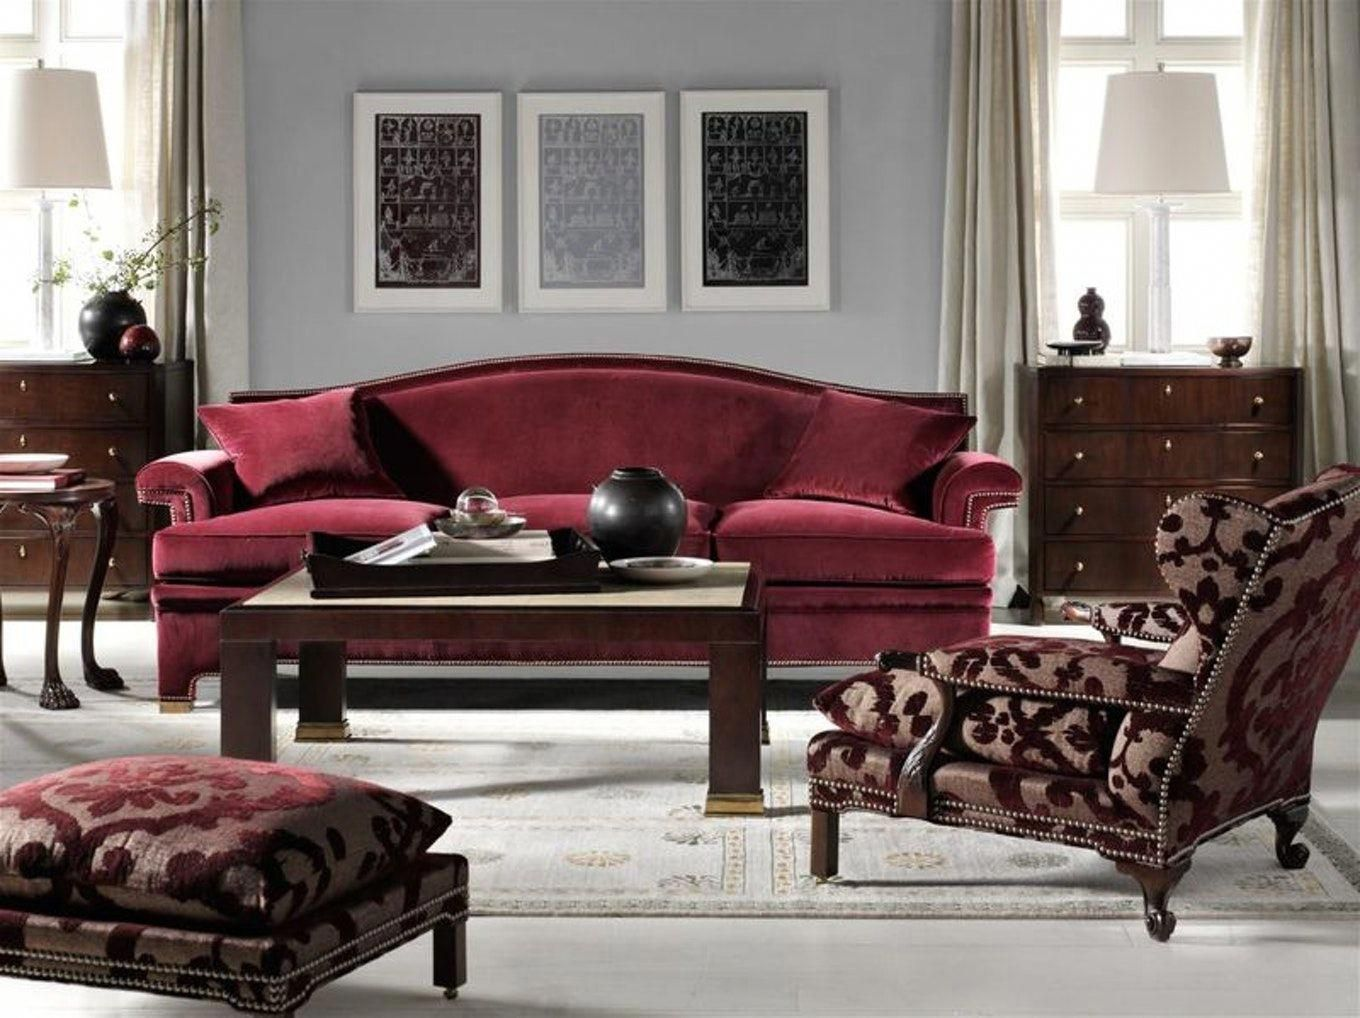 Fearsome burgundy living room decor photo design maroon and gray decorating ideas leather sofa 36 fearsome burgundy living room decor photo design